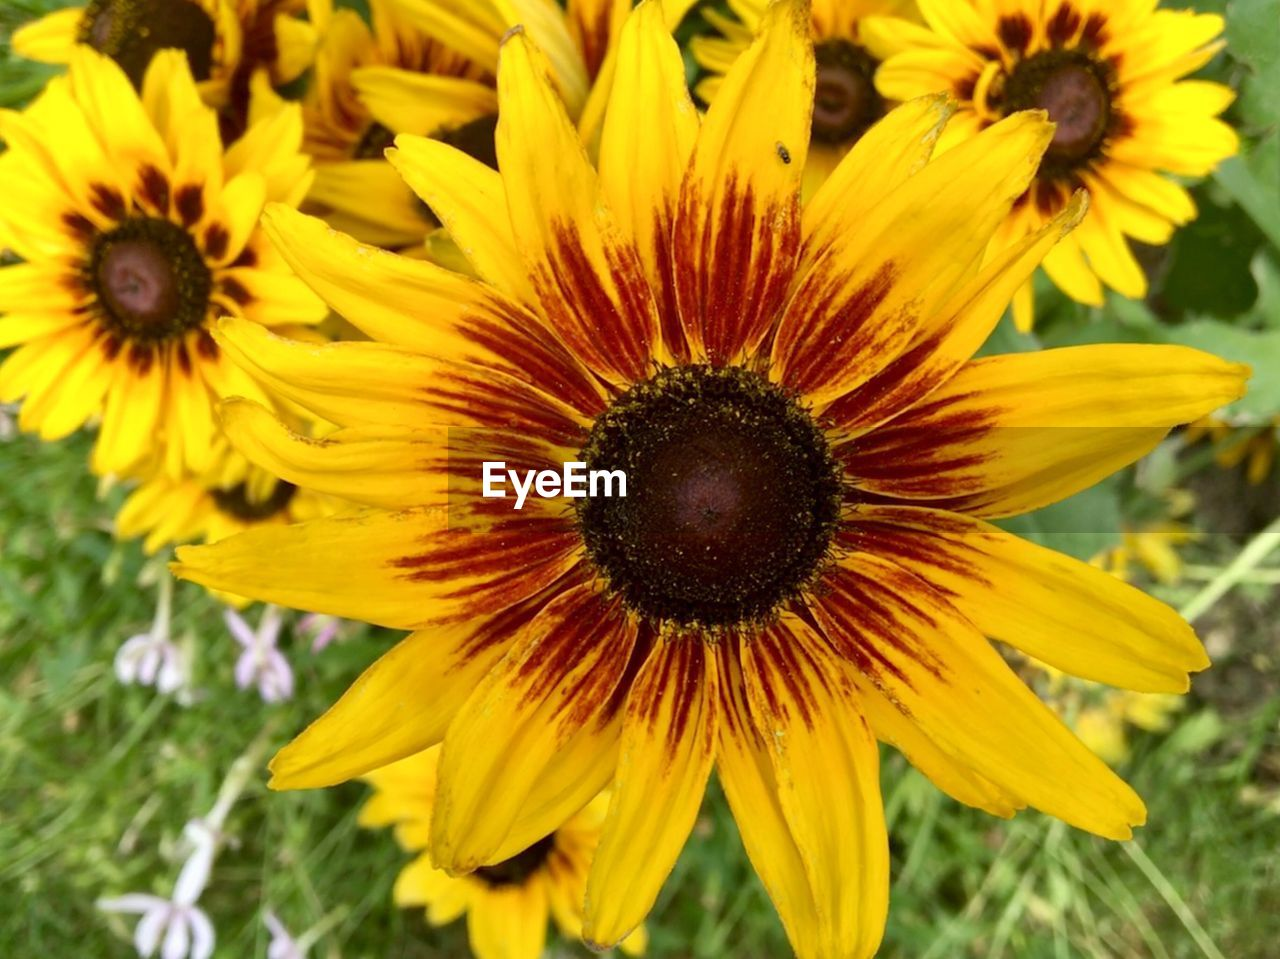 flower, flowering plant, yellow, fragility, flower head, vulnerability, petal, freshness, growth, inflorescence, plant, beauty in nature, close-up, pollen, focus on foreground, coneflower, nature, no people, black-eyed susan, day, sunflower, gazania